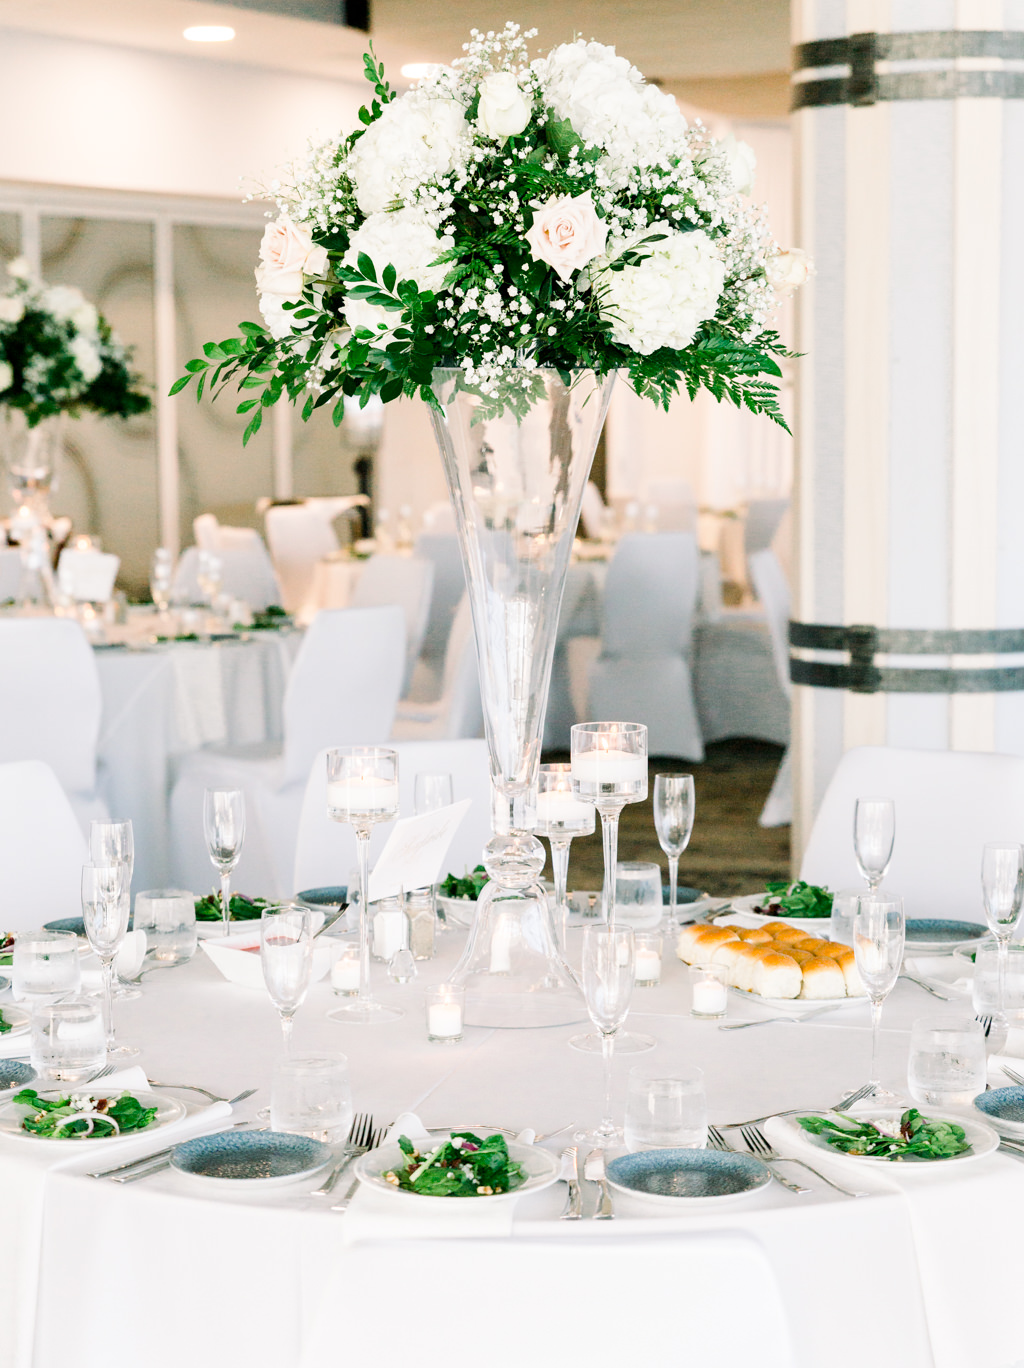 Classic Elegant Wedding Reception Decor, Round Tables with White Tablecloths and Linens, Tall Glass Cylinder Vase with White Hydrangeas, Blush Pink Roses, Baby's Breath and Greenery Leaves Floral Centerpiece   Downtown Tampa Wedding Venue The Florida Aquarium